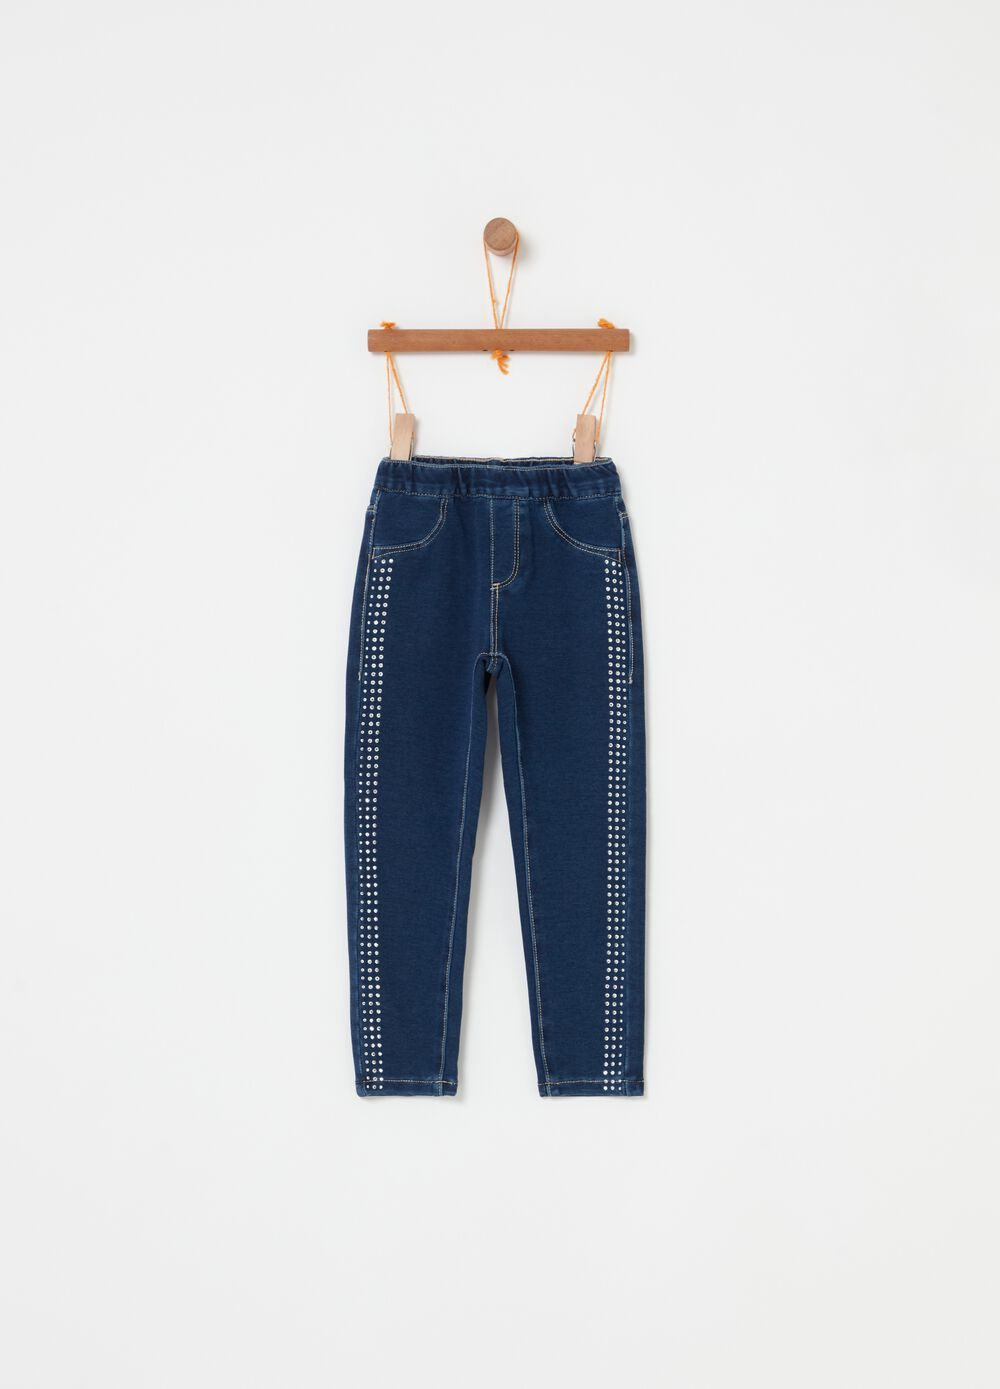 French terry denim-effect trousers